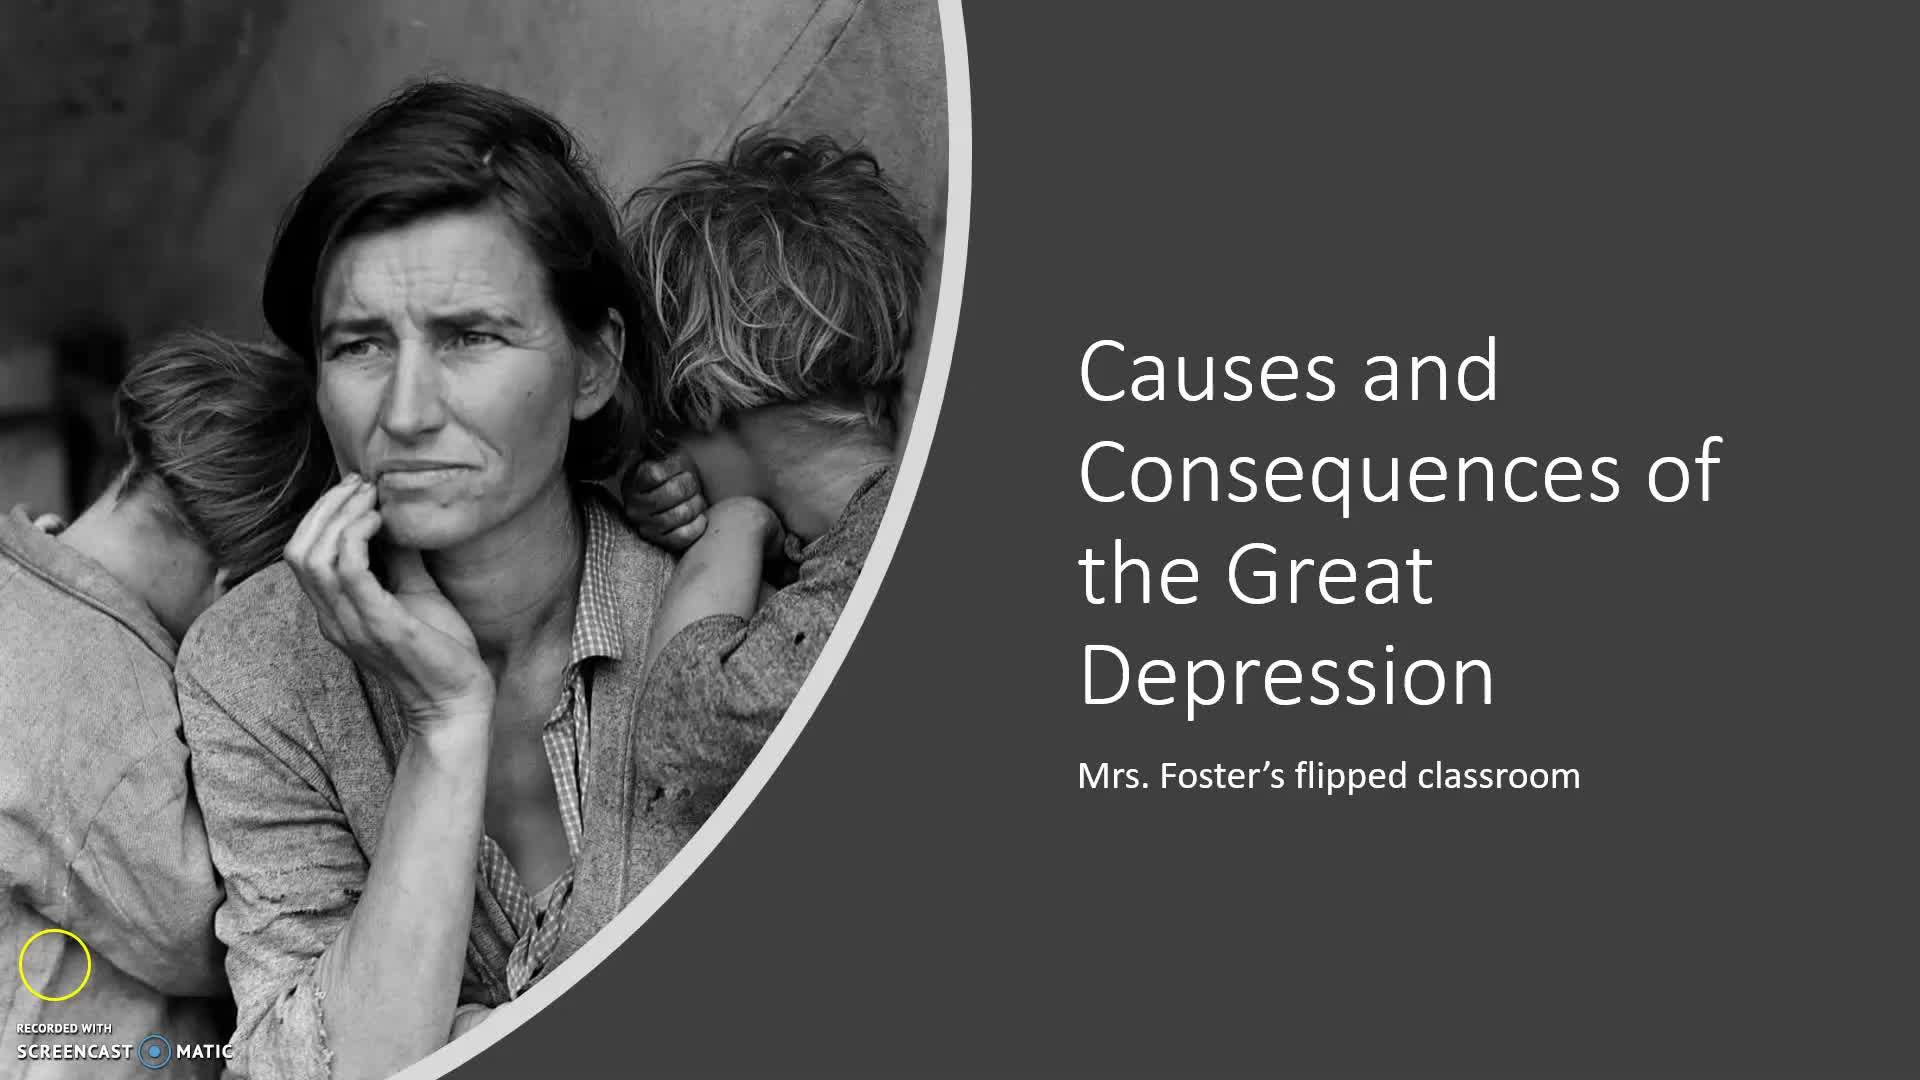 Causes and Consequences of the Great Depression